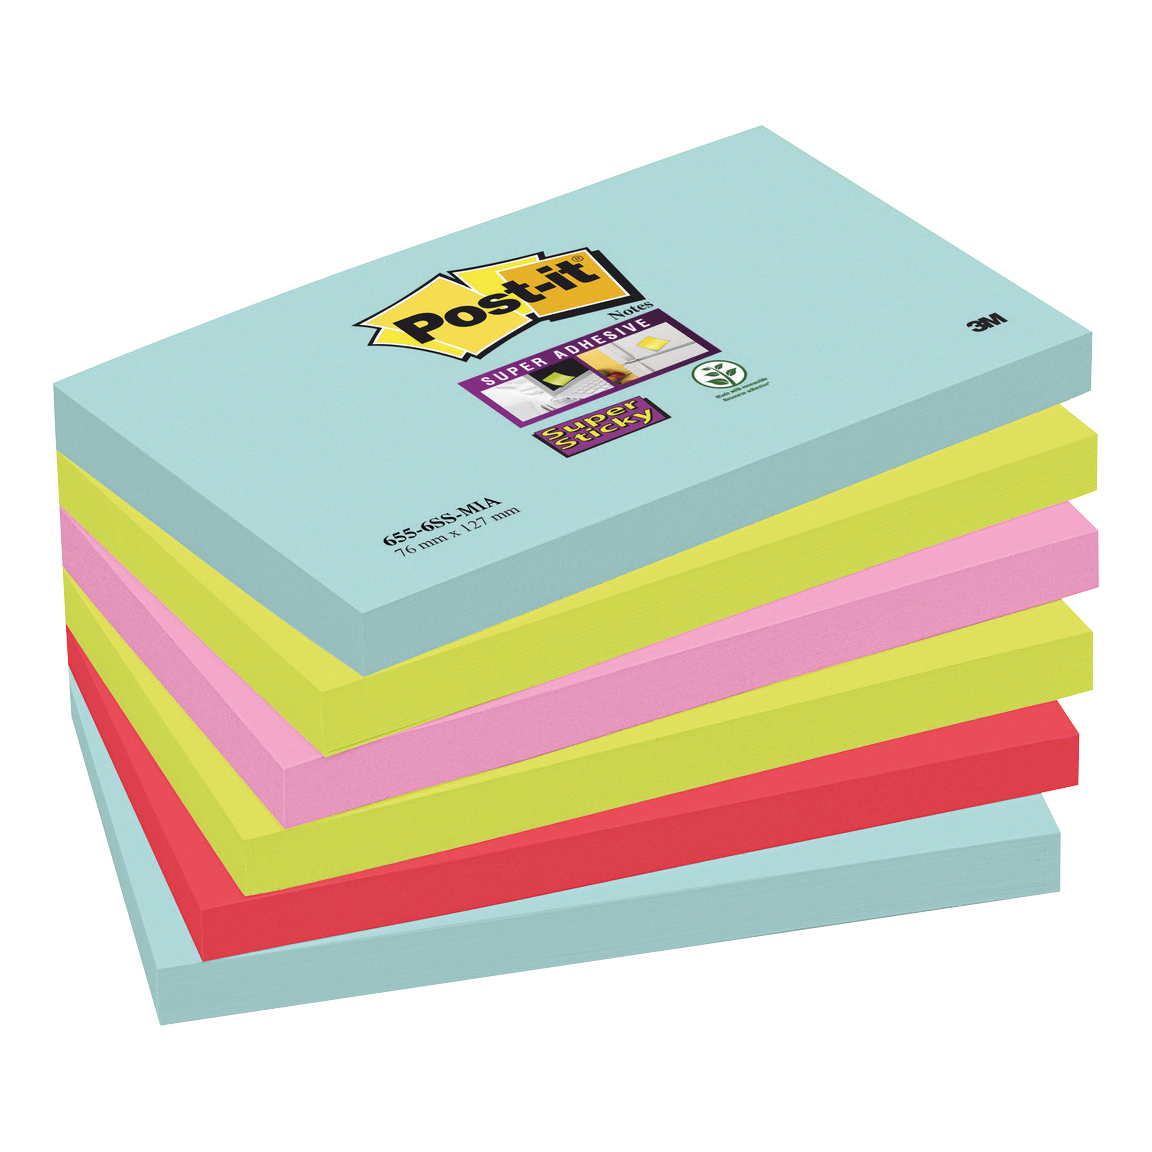 Self adhesive note paper Post-It Super Sticky Notes Miami 76x127mm Aqua Neon Green Pink Poppy Ref 655-6SS-MIA Pack 6